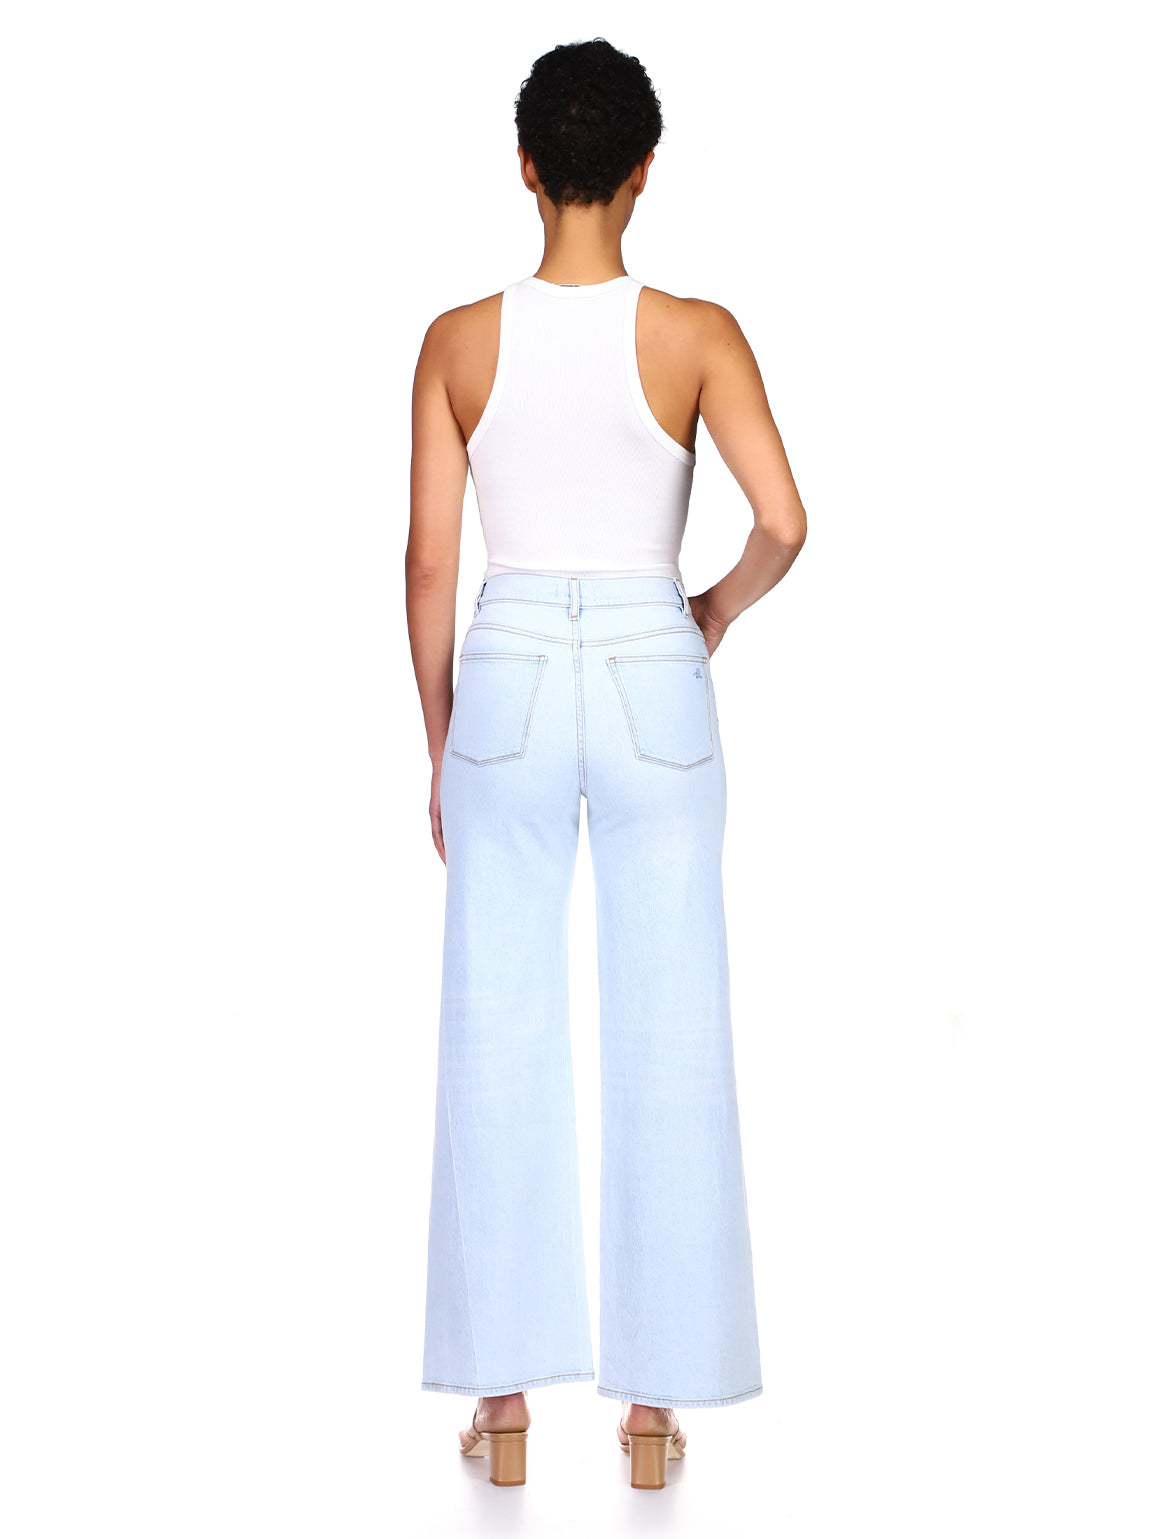 Hepburn Wide Leg High Rise Vintage 31"